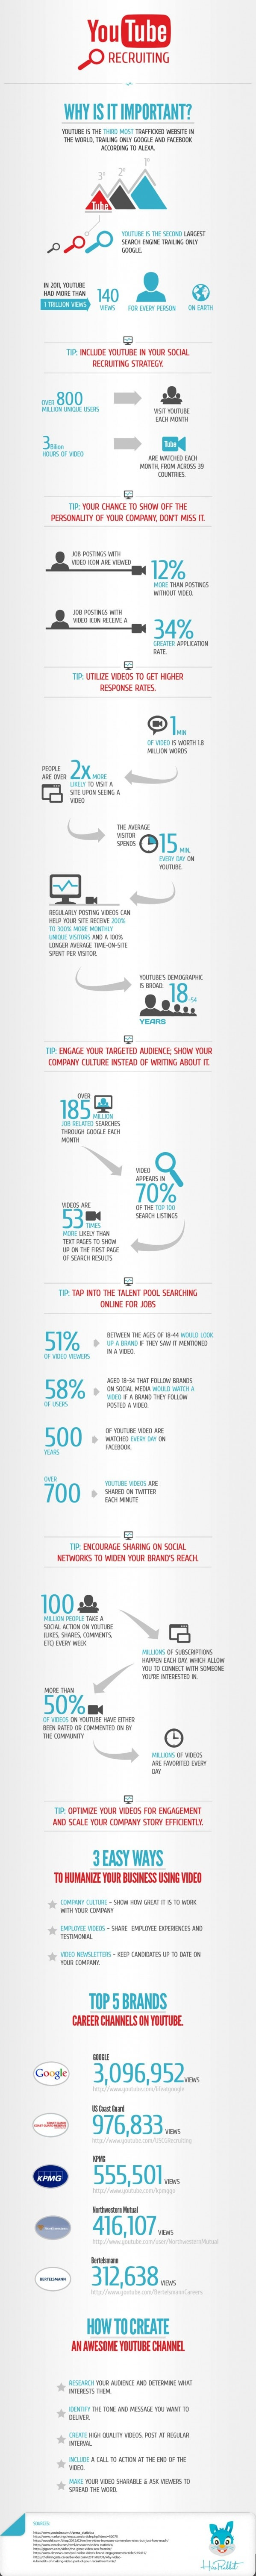 how youtube is important for social media recruitment